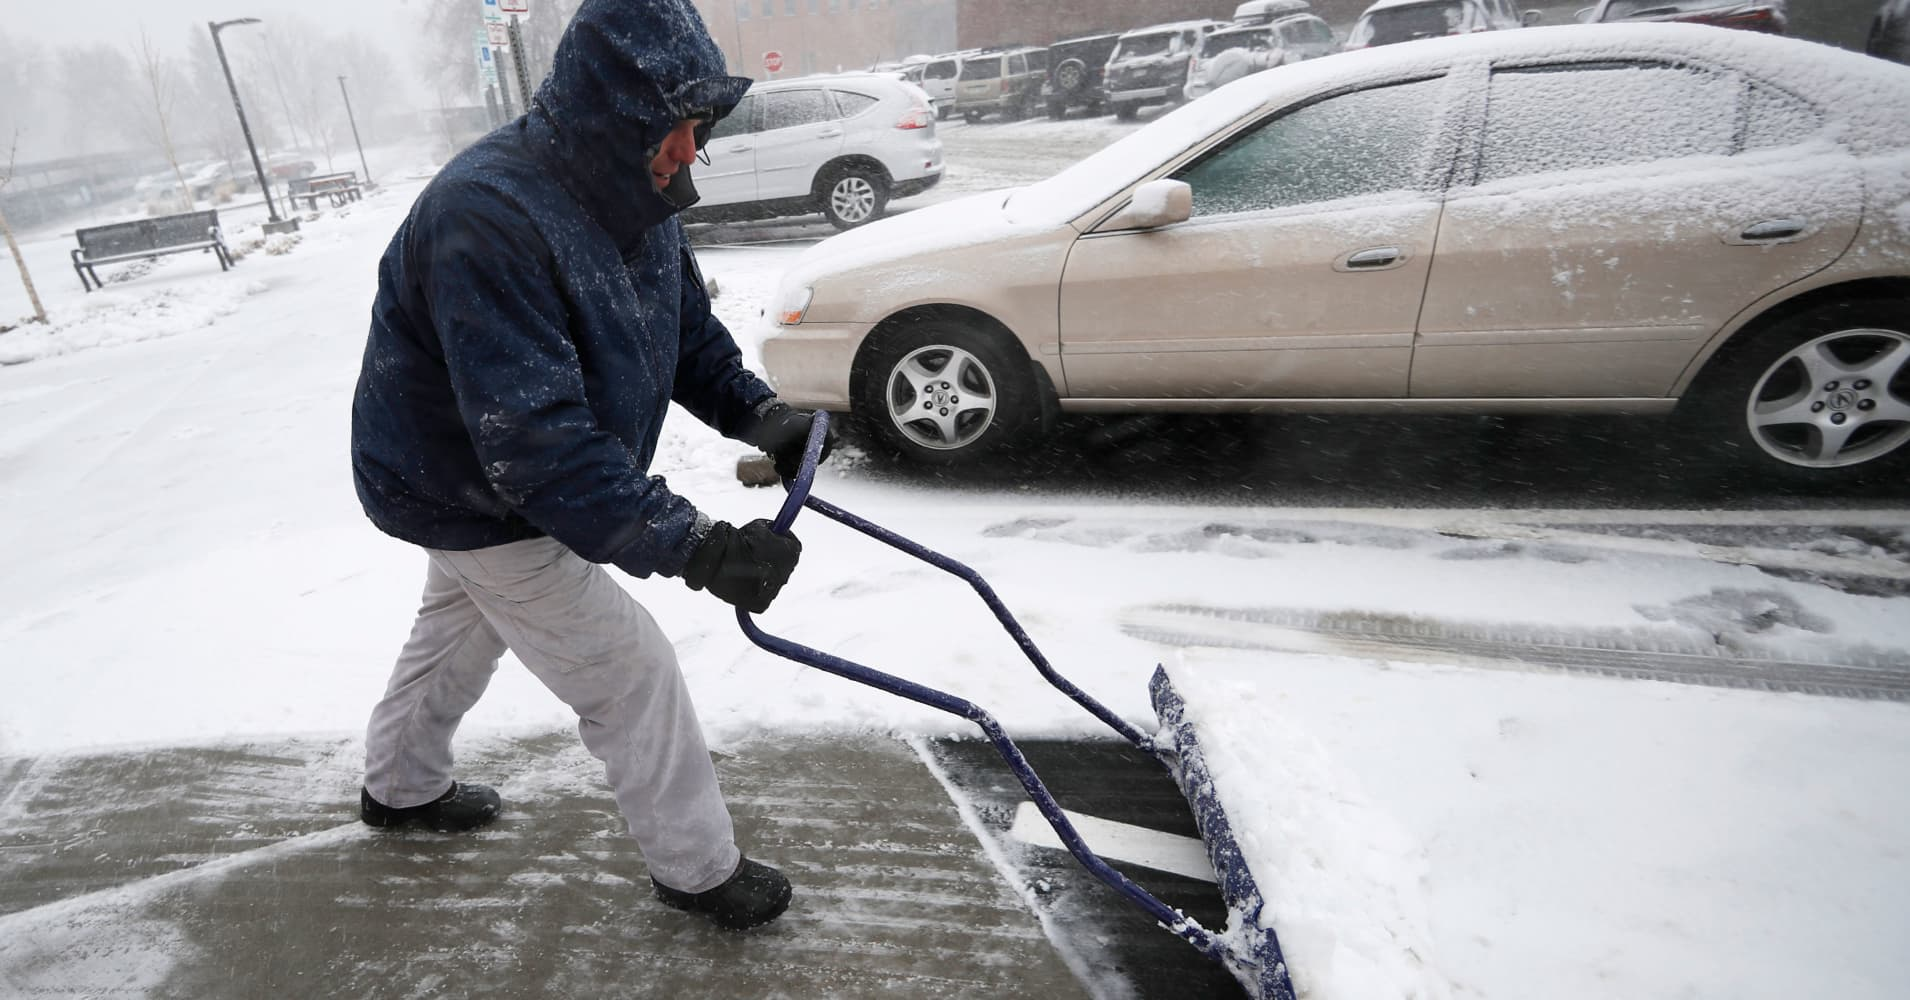 Epic storm brings blizzard, rain and tornado threat to more than 25 states in US